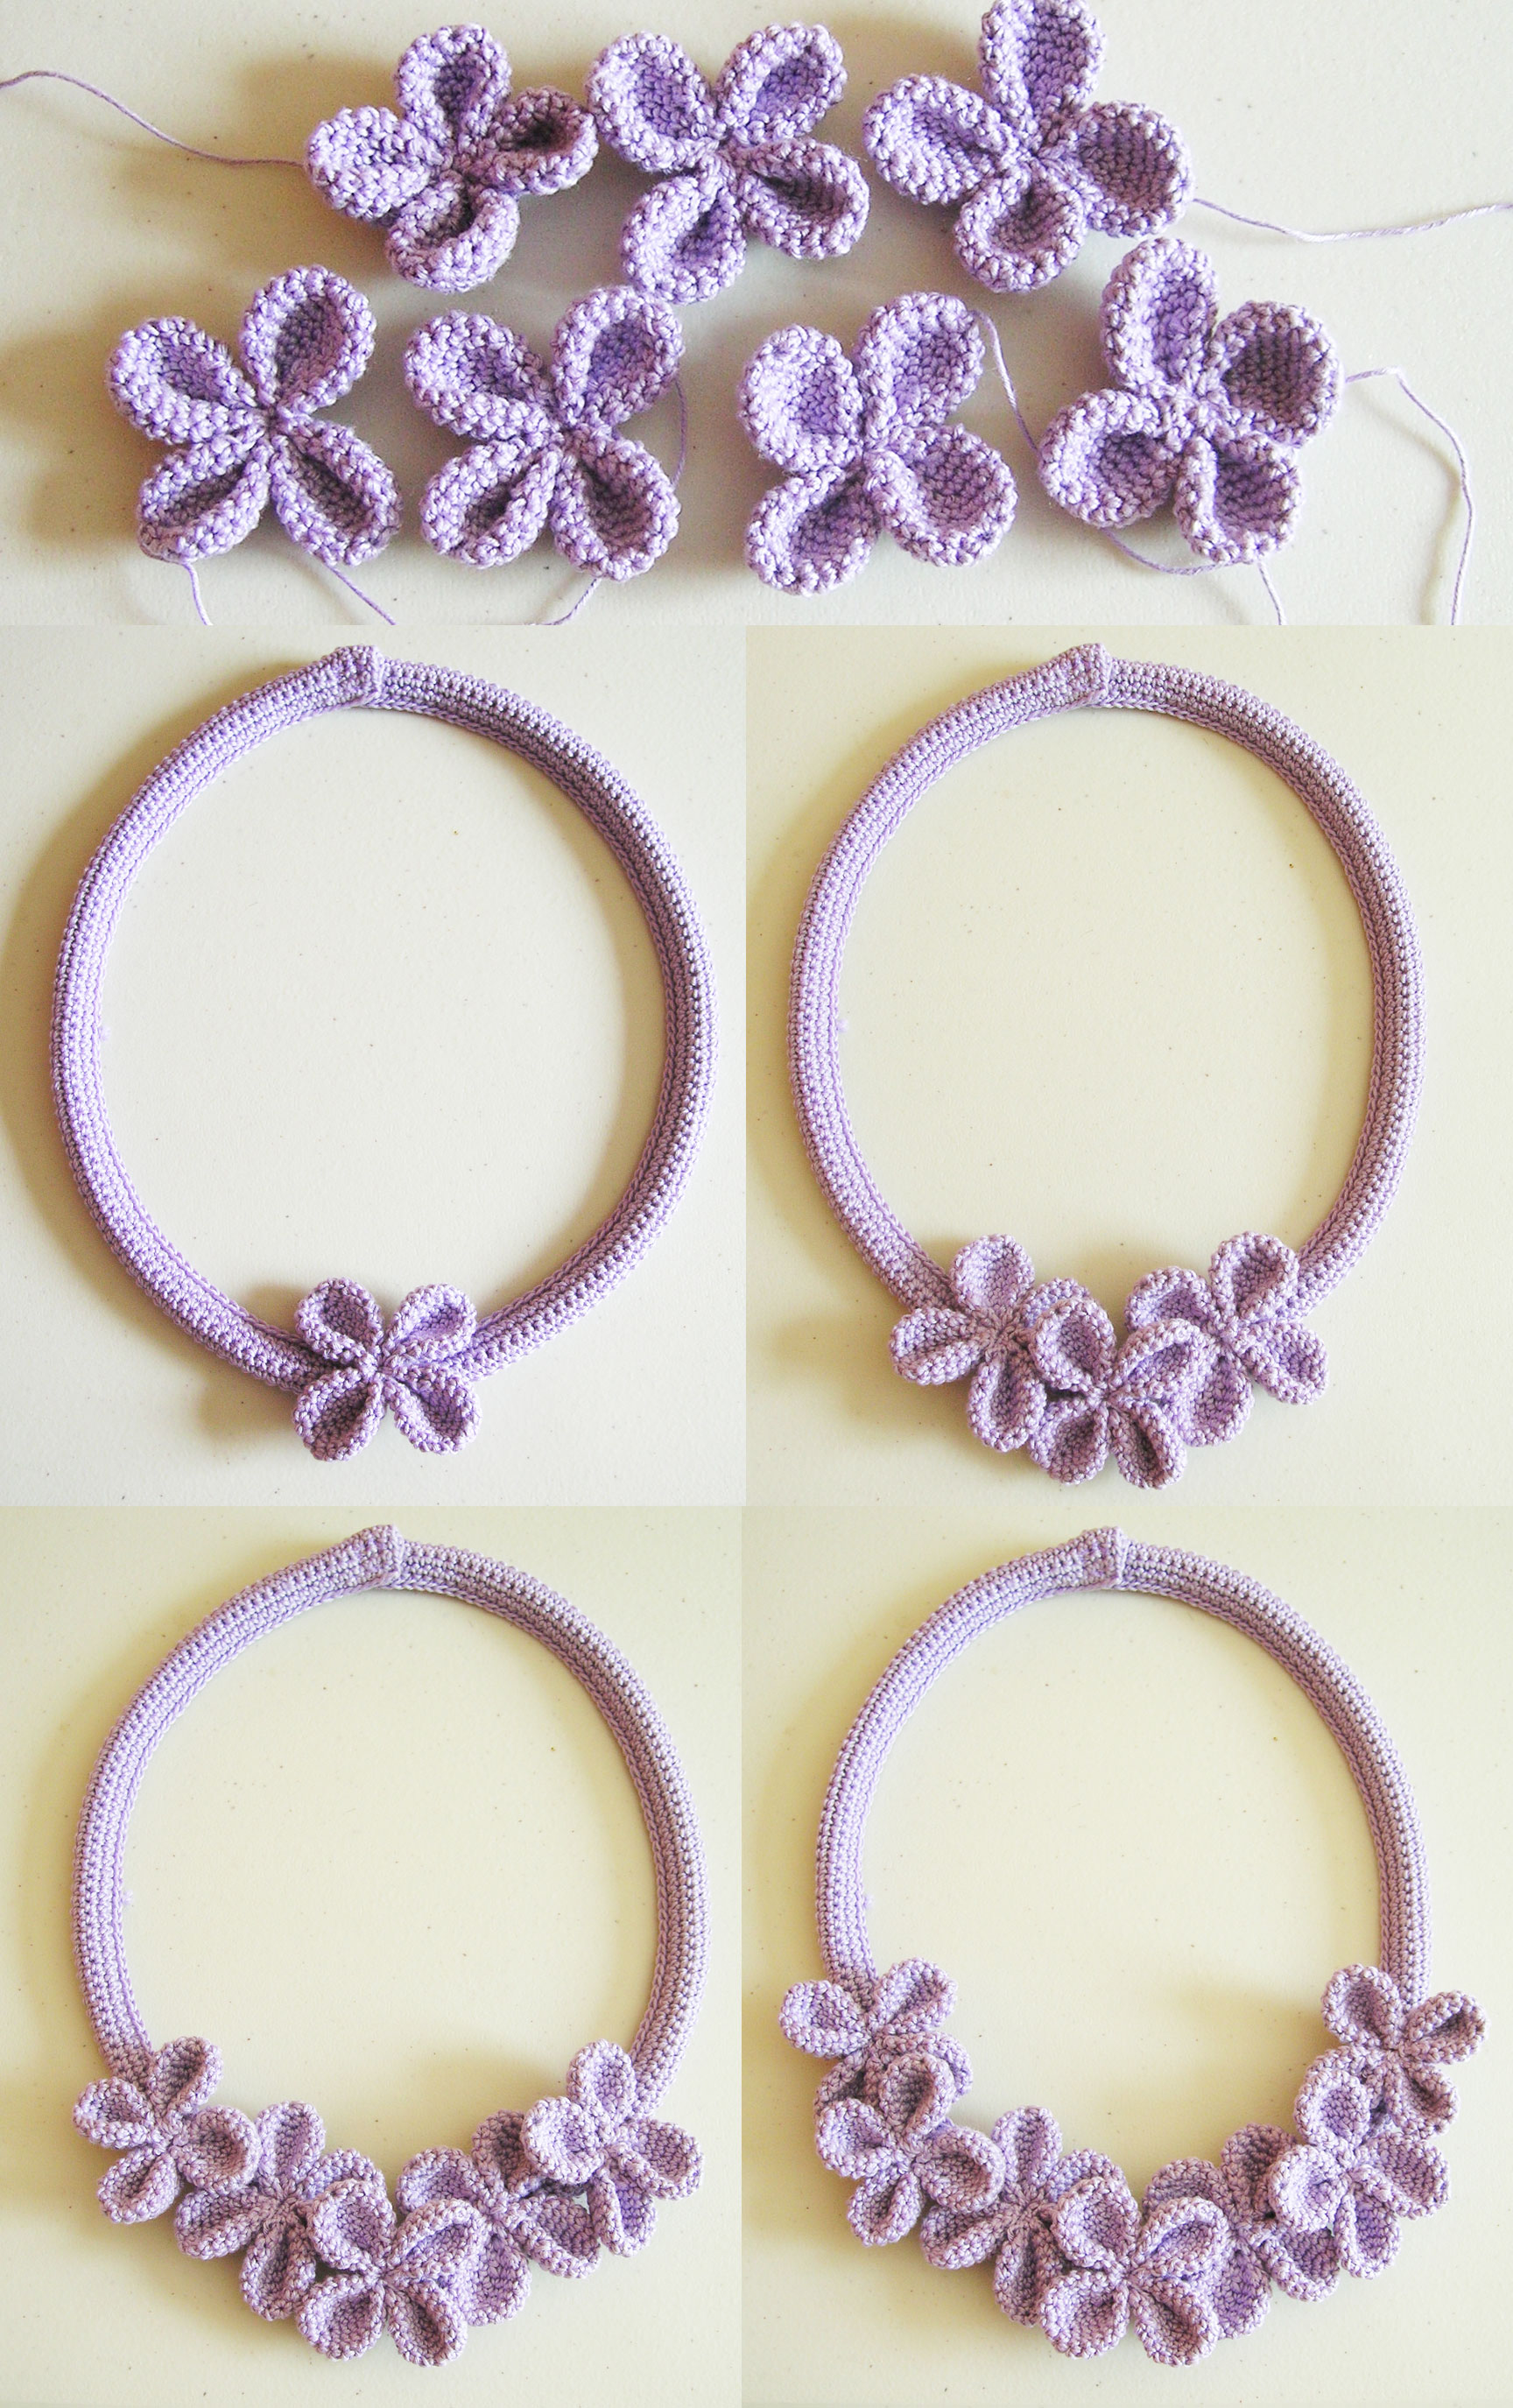 Crochet flower necklace #3/ Collar de flores a ganchillo #3